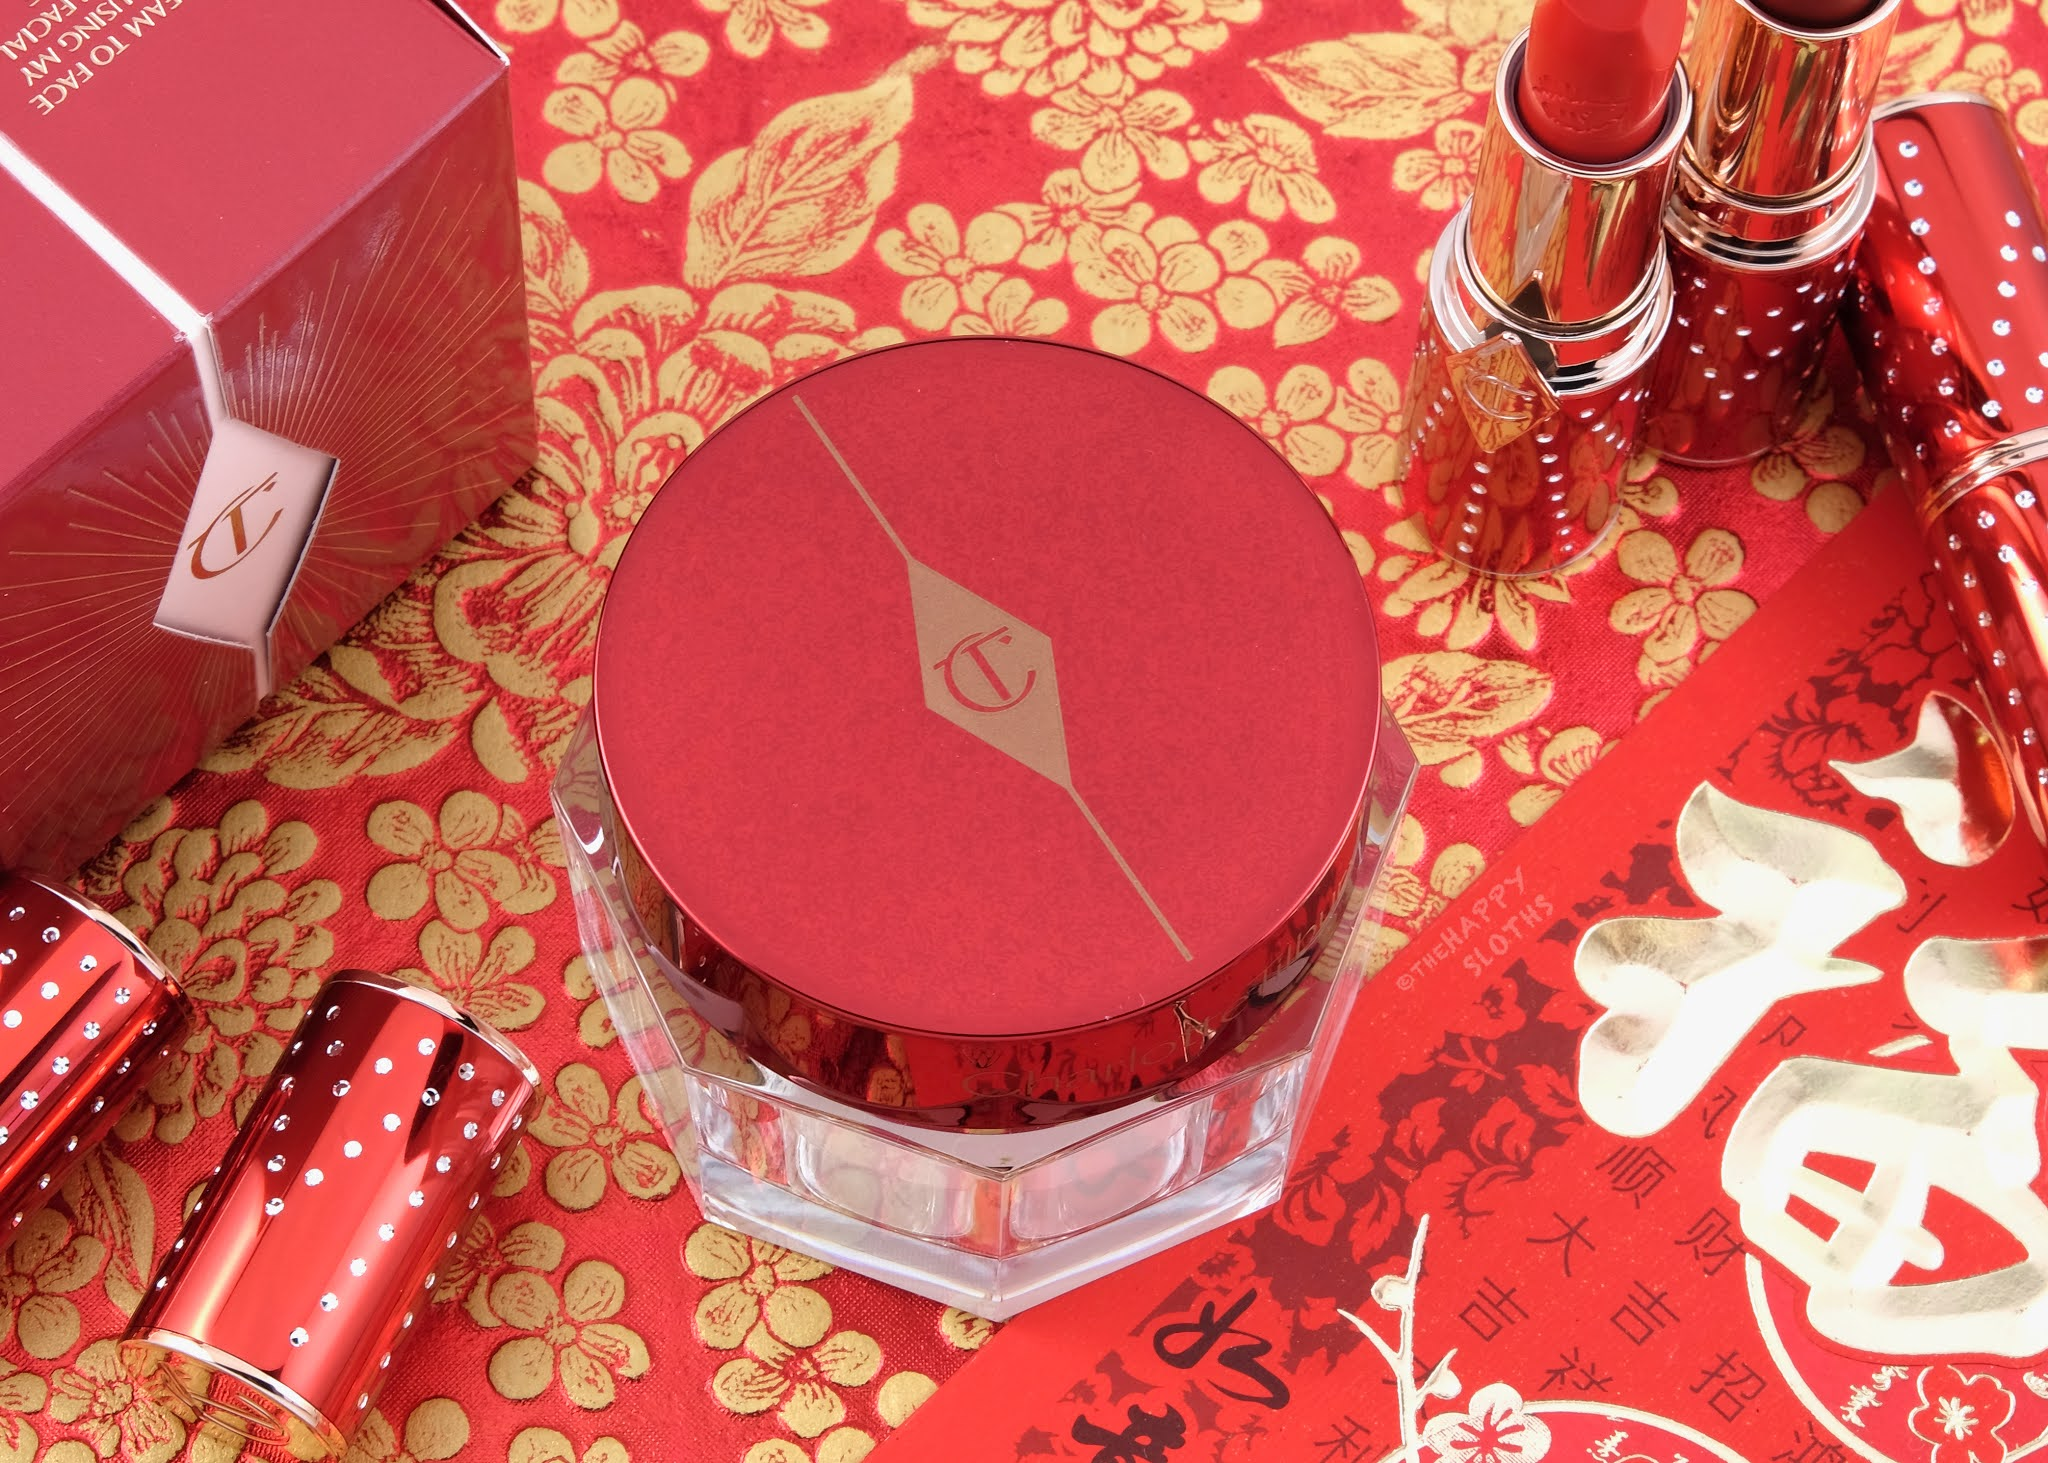 Charlotte Tilbury | Lunar New Year Limited Edition Charlotte's Magic Cream: Review and Swatches